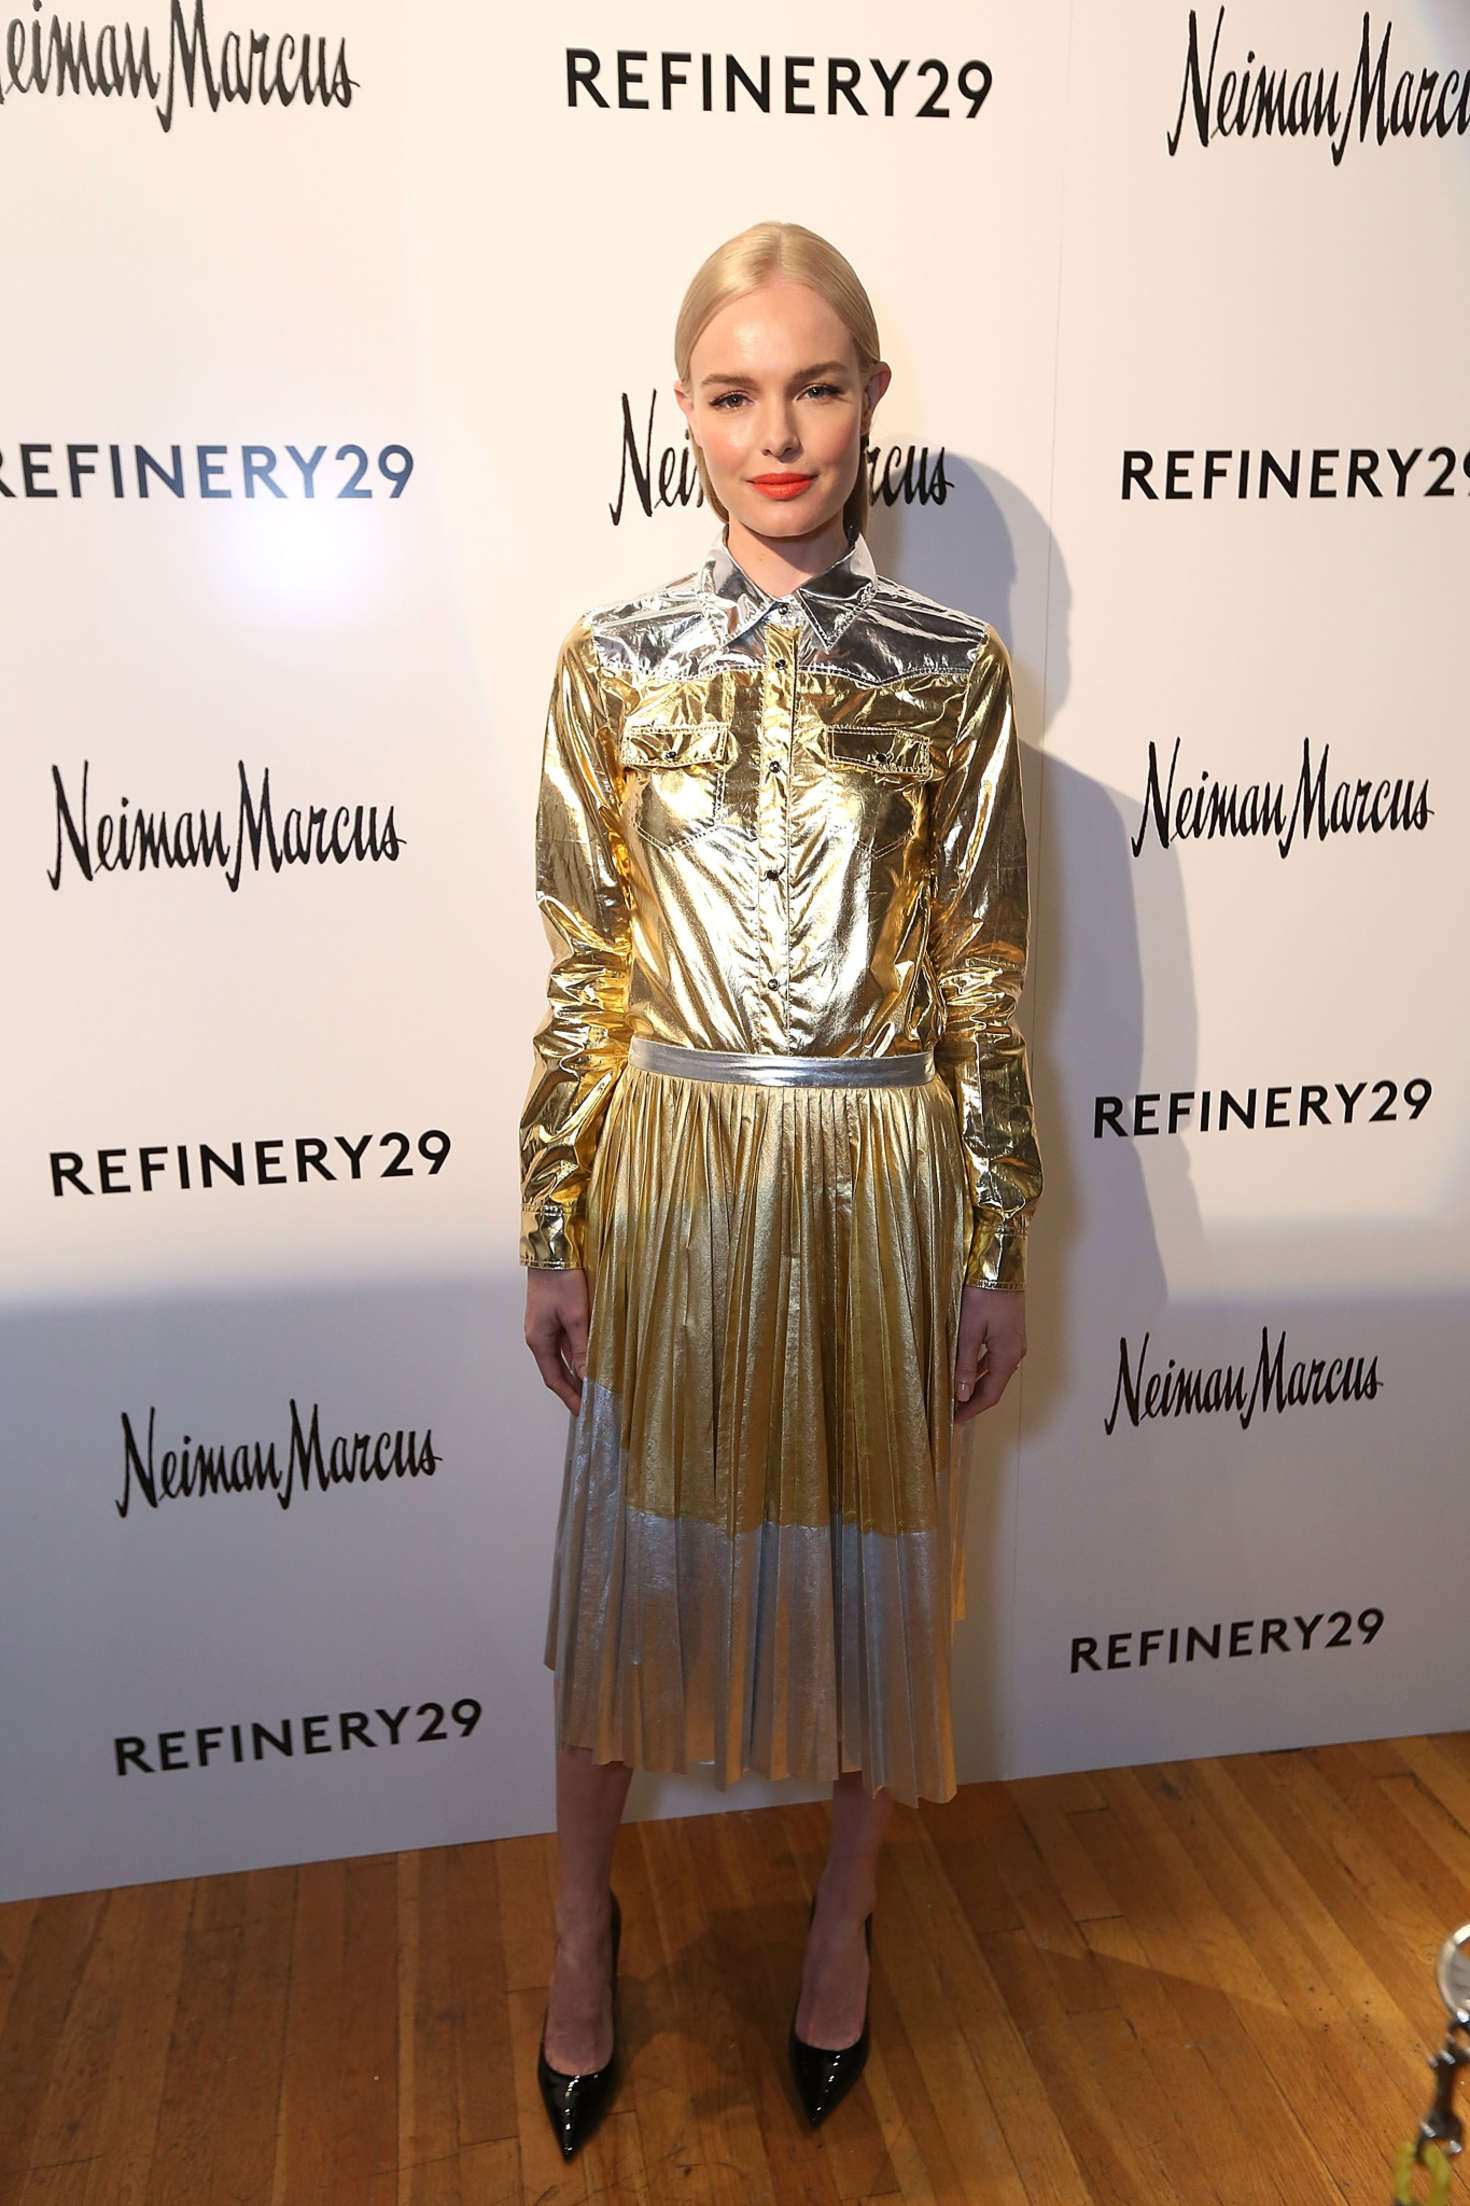 Kate Bosworth - Refinery29's School of Self Expression Event at SXSW 2016 in Austin